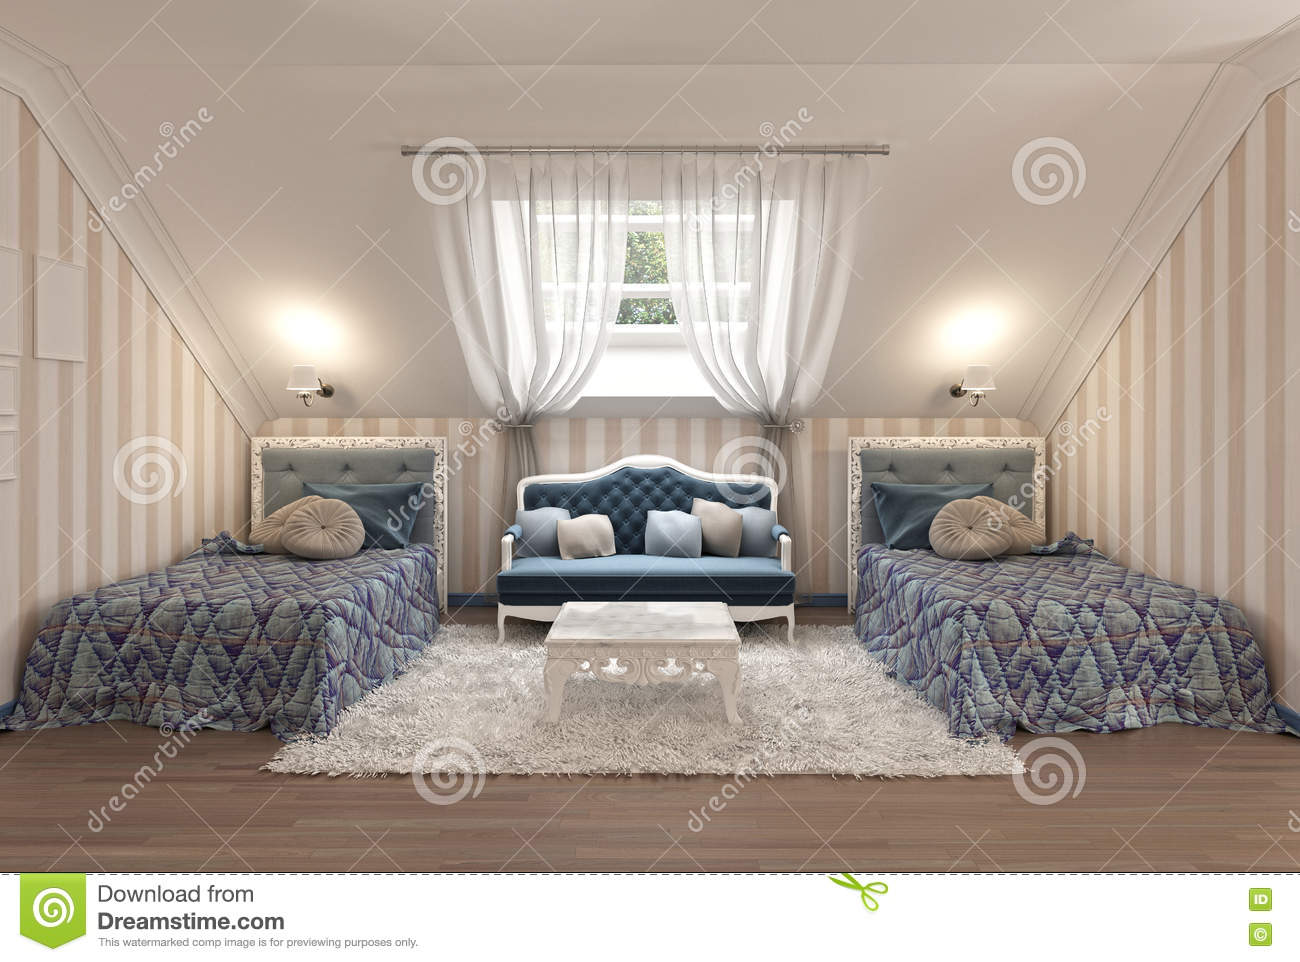 Luxury Children S Bedroom For Two Kids With Twin Beds Stock Illustration Illustration Of Lamp House 79489277